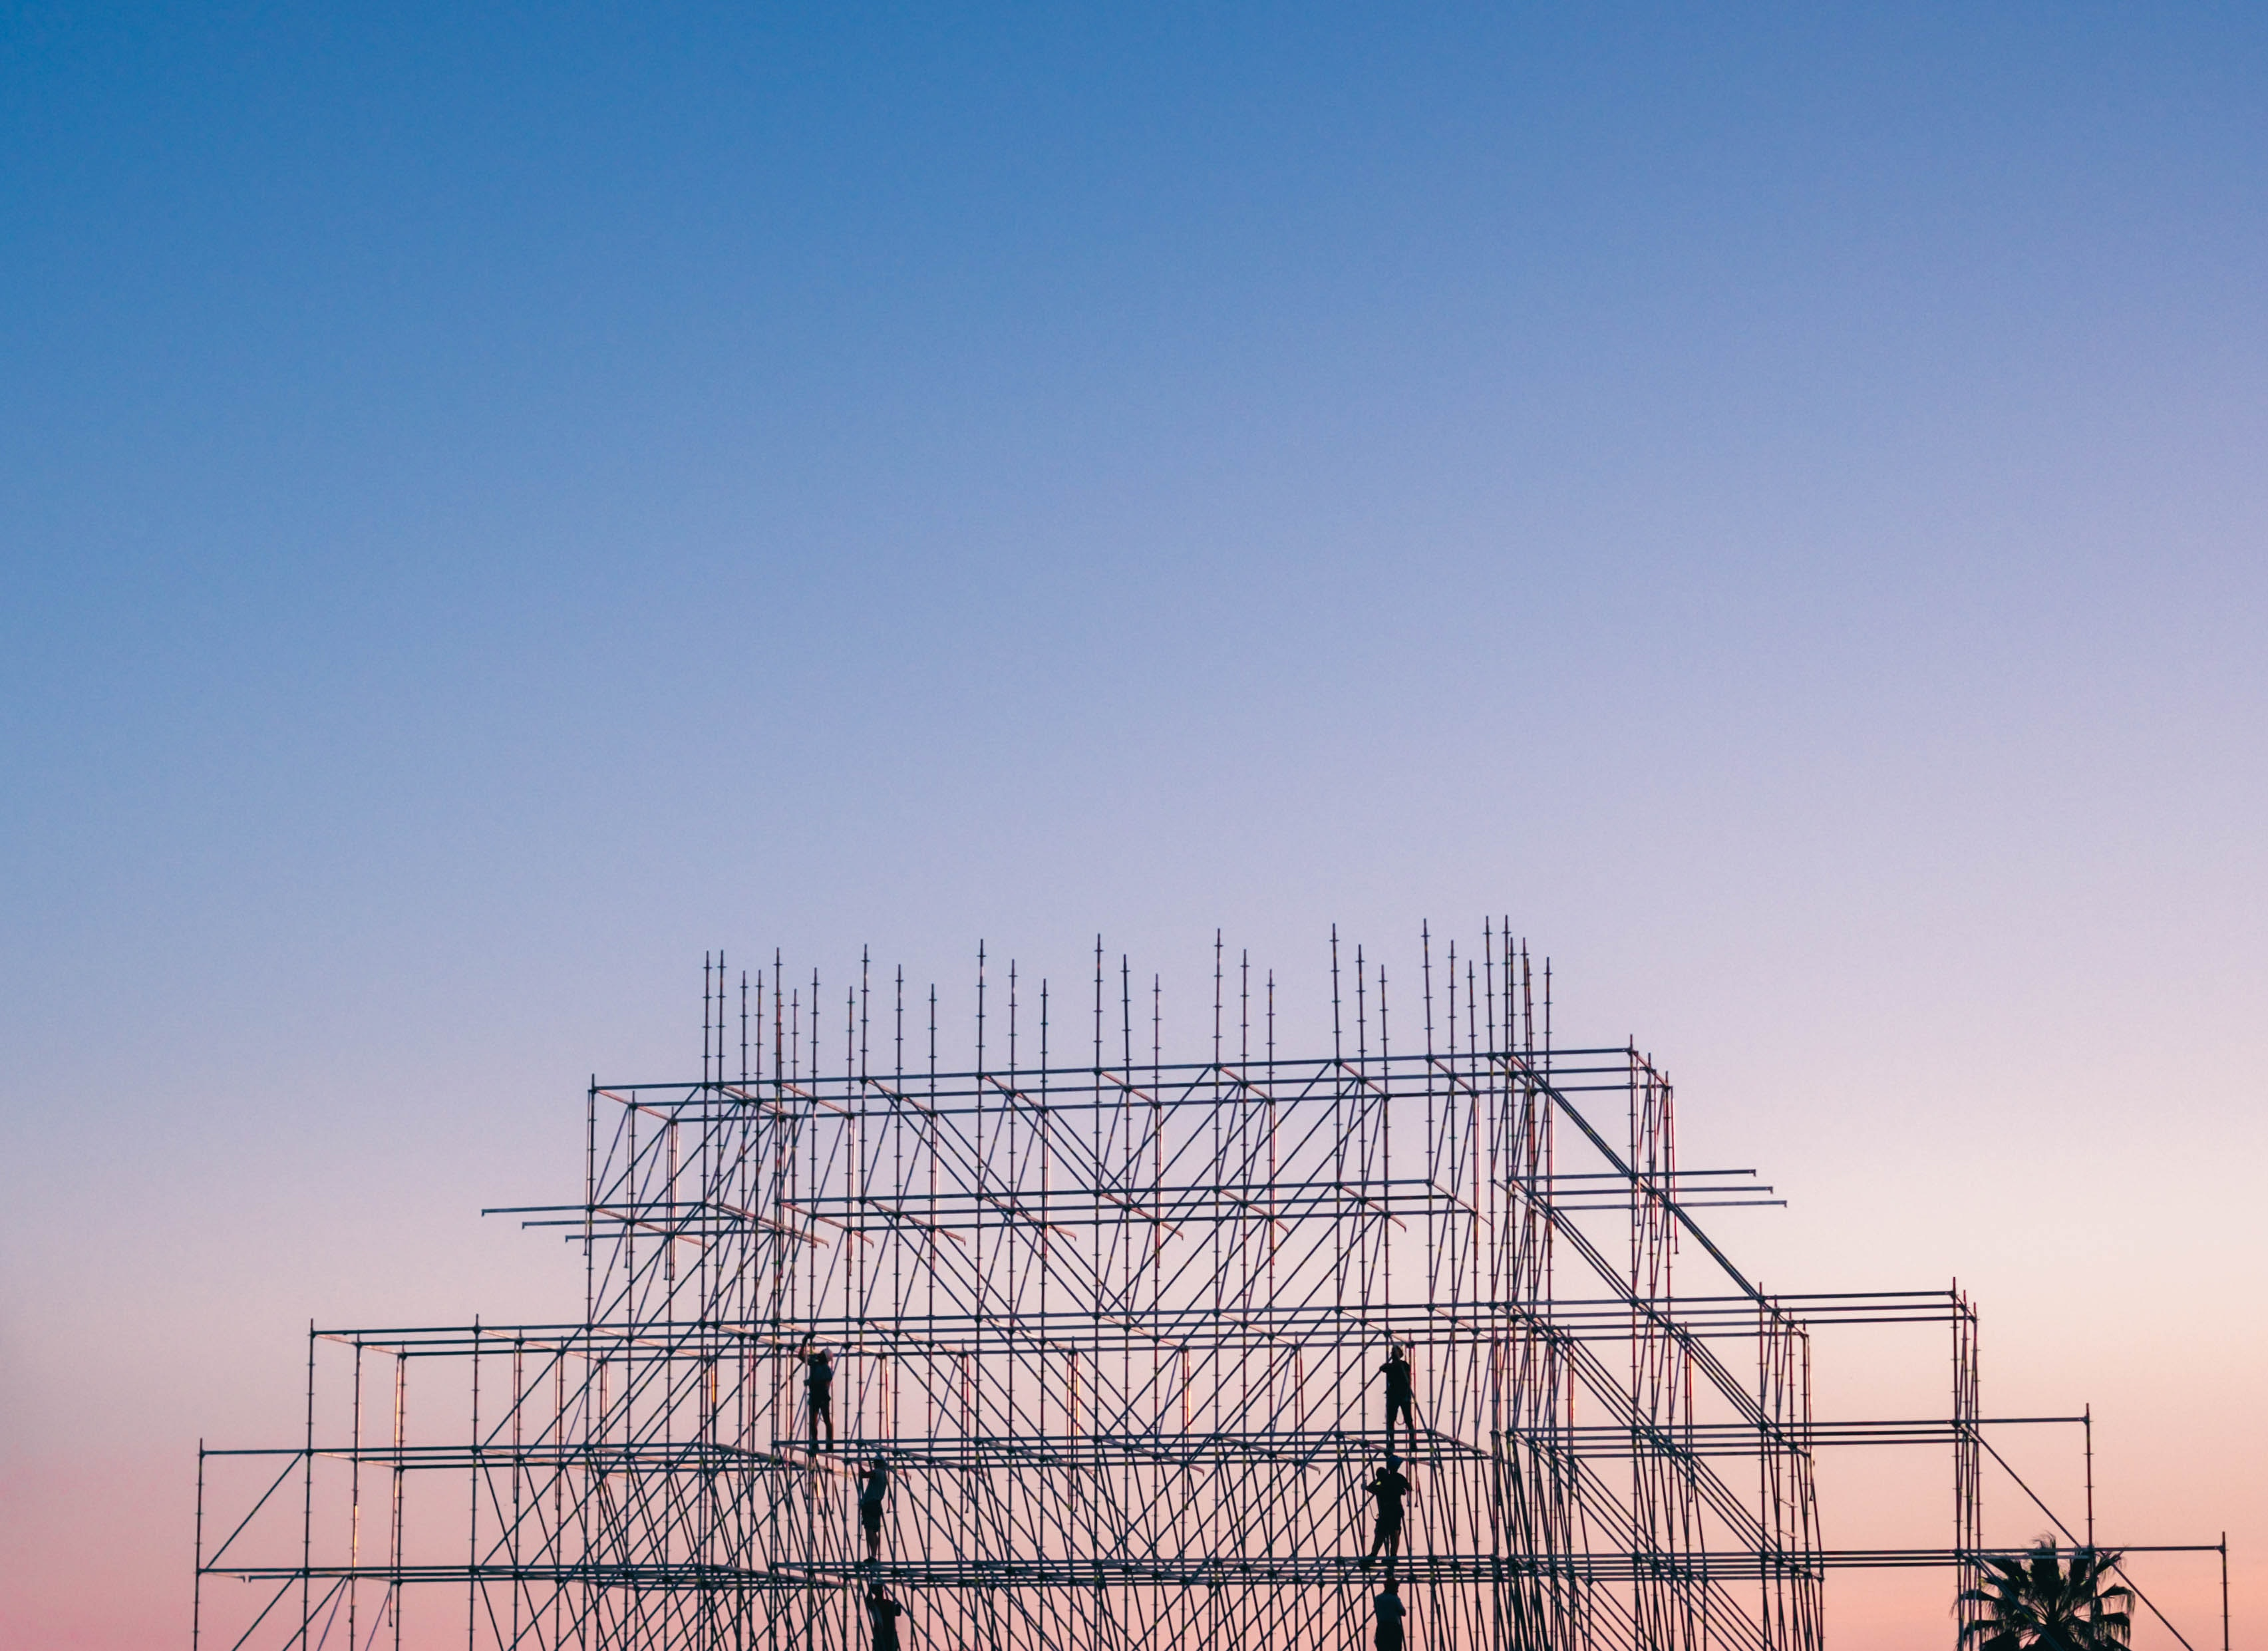 photo-of-people-on-building-under-construction-1117452